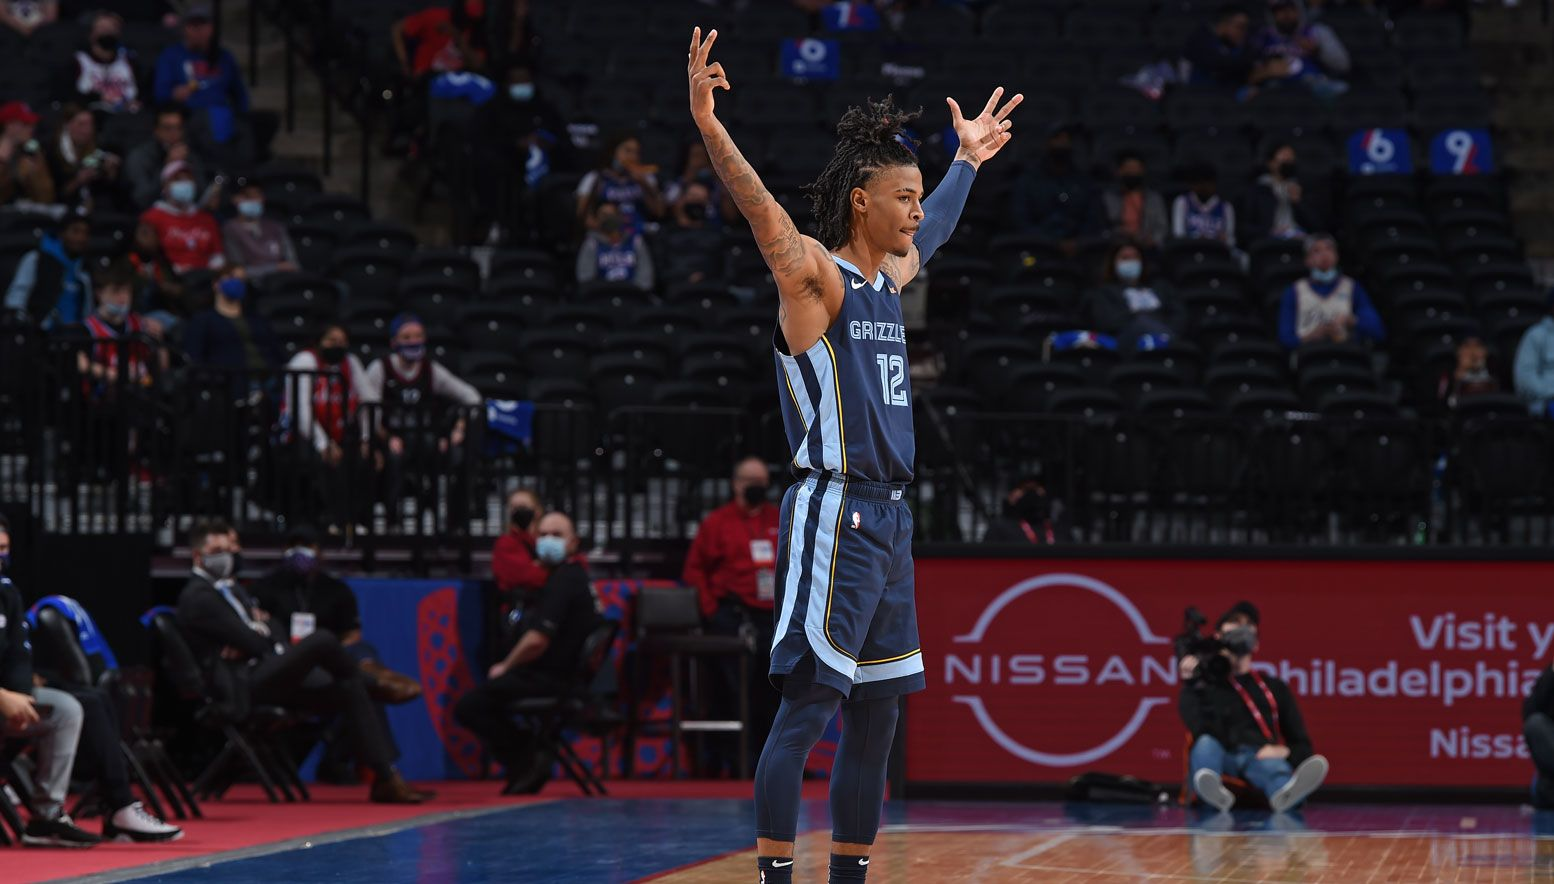 Ja Morant posing during a game